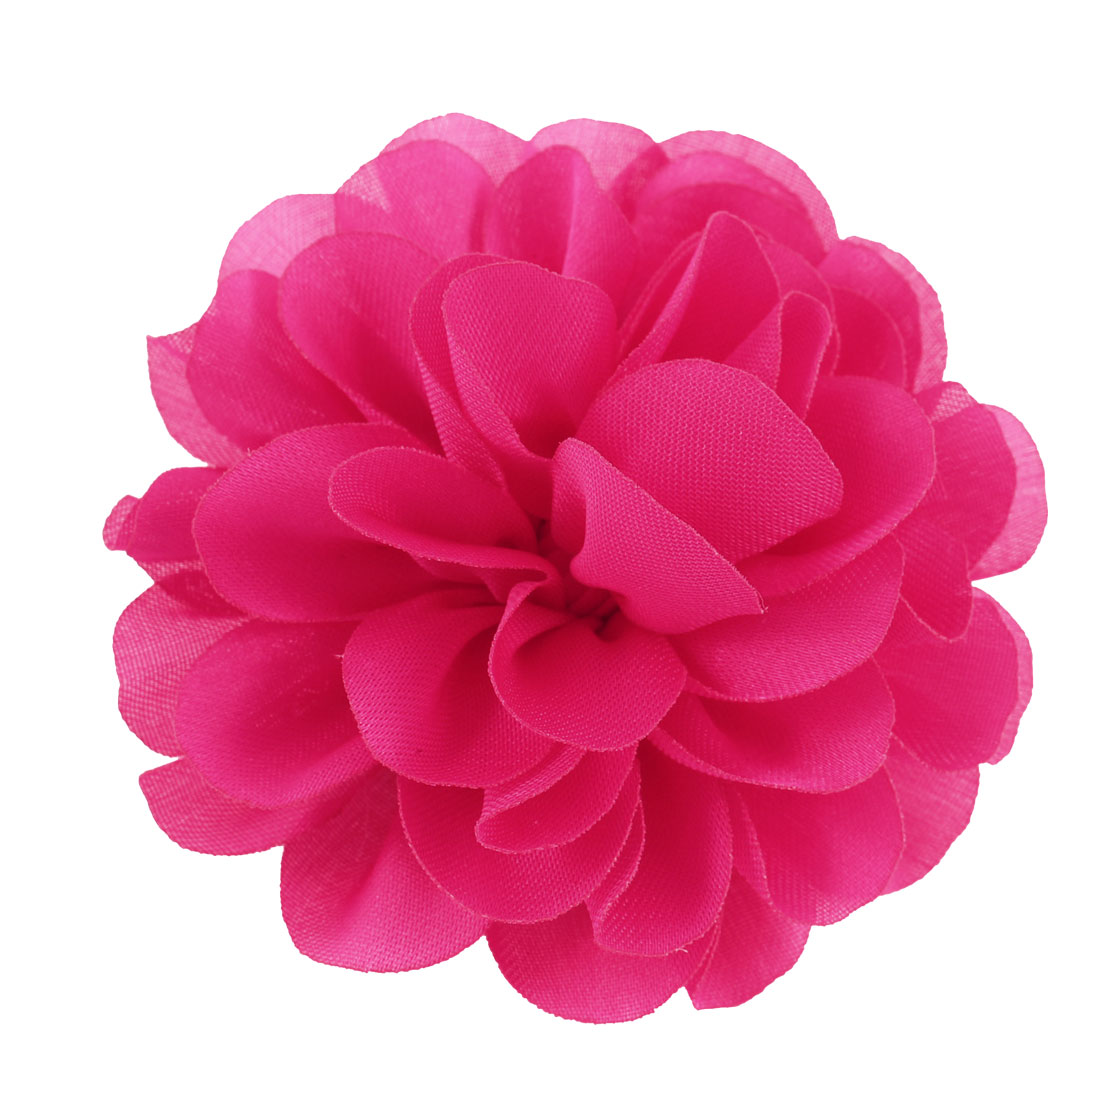 Woman Clothes Ornament Floral Design Flower Corsage Brooch Pin Pink